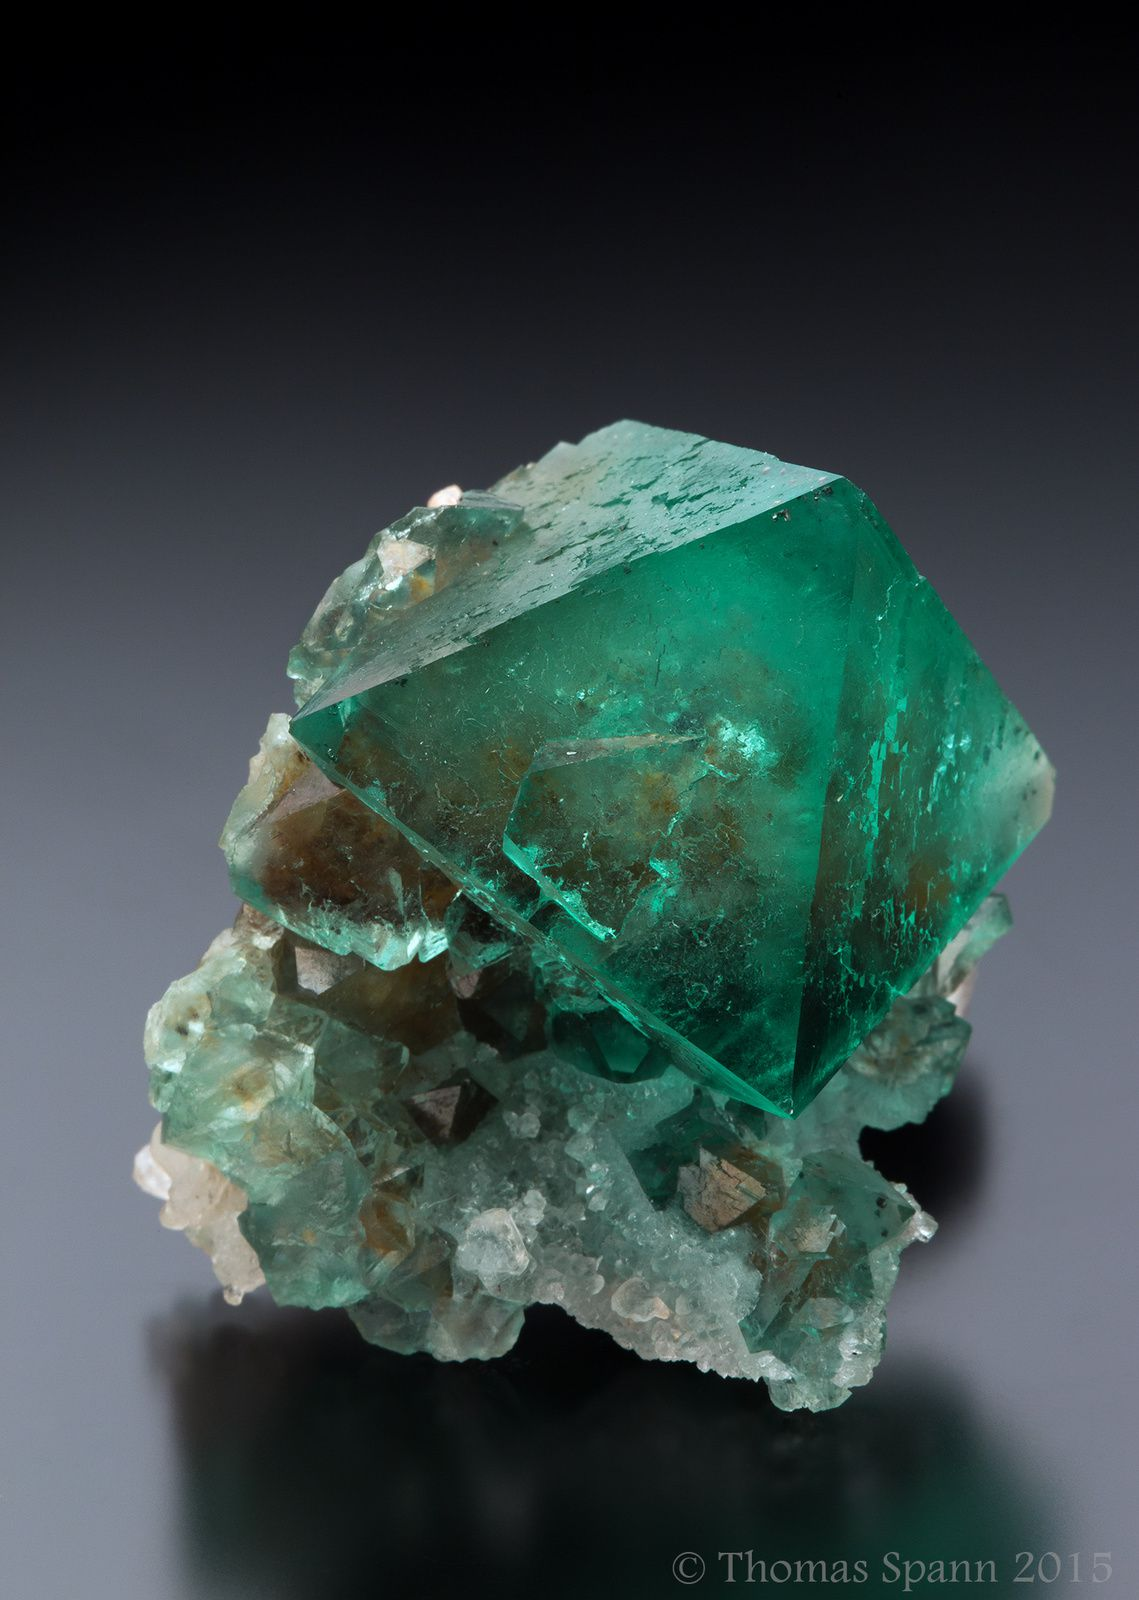 Fluorite with Quartz from Riemvasmaak, Kakamas Dist. Northern Cape Prov., South Africa (specimen and photo by Thomas Spann)